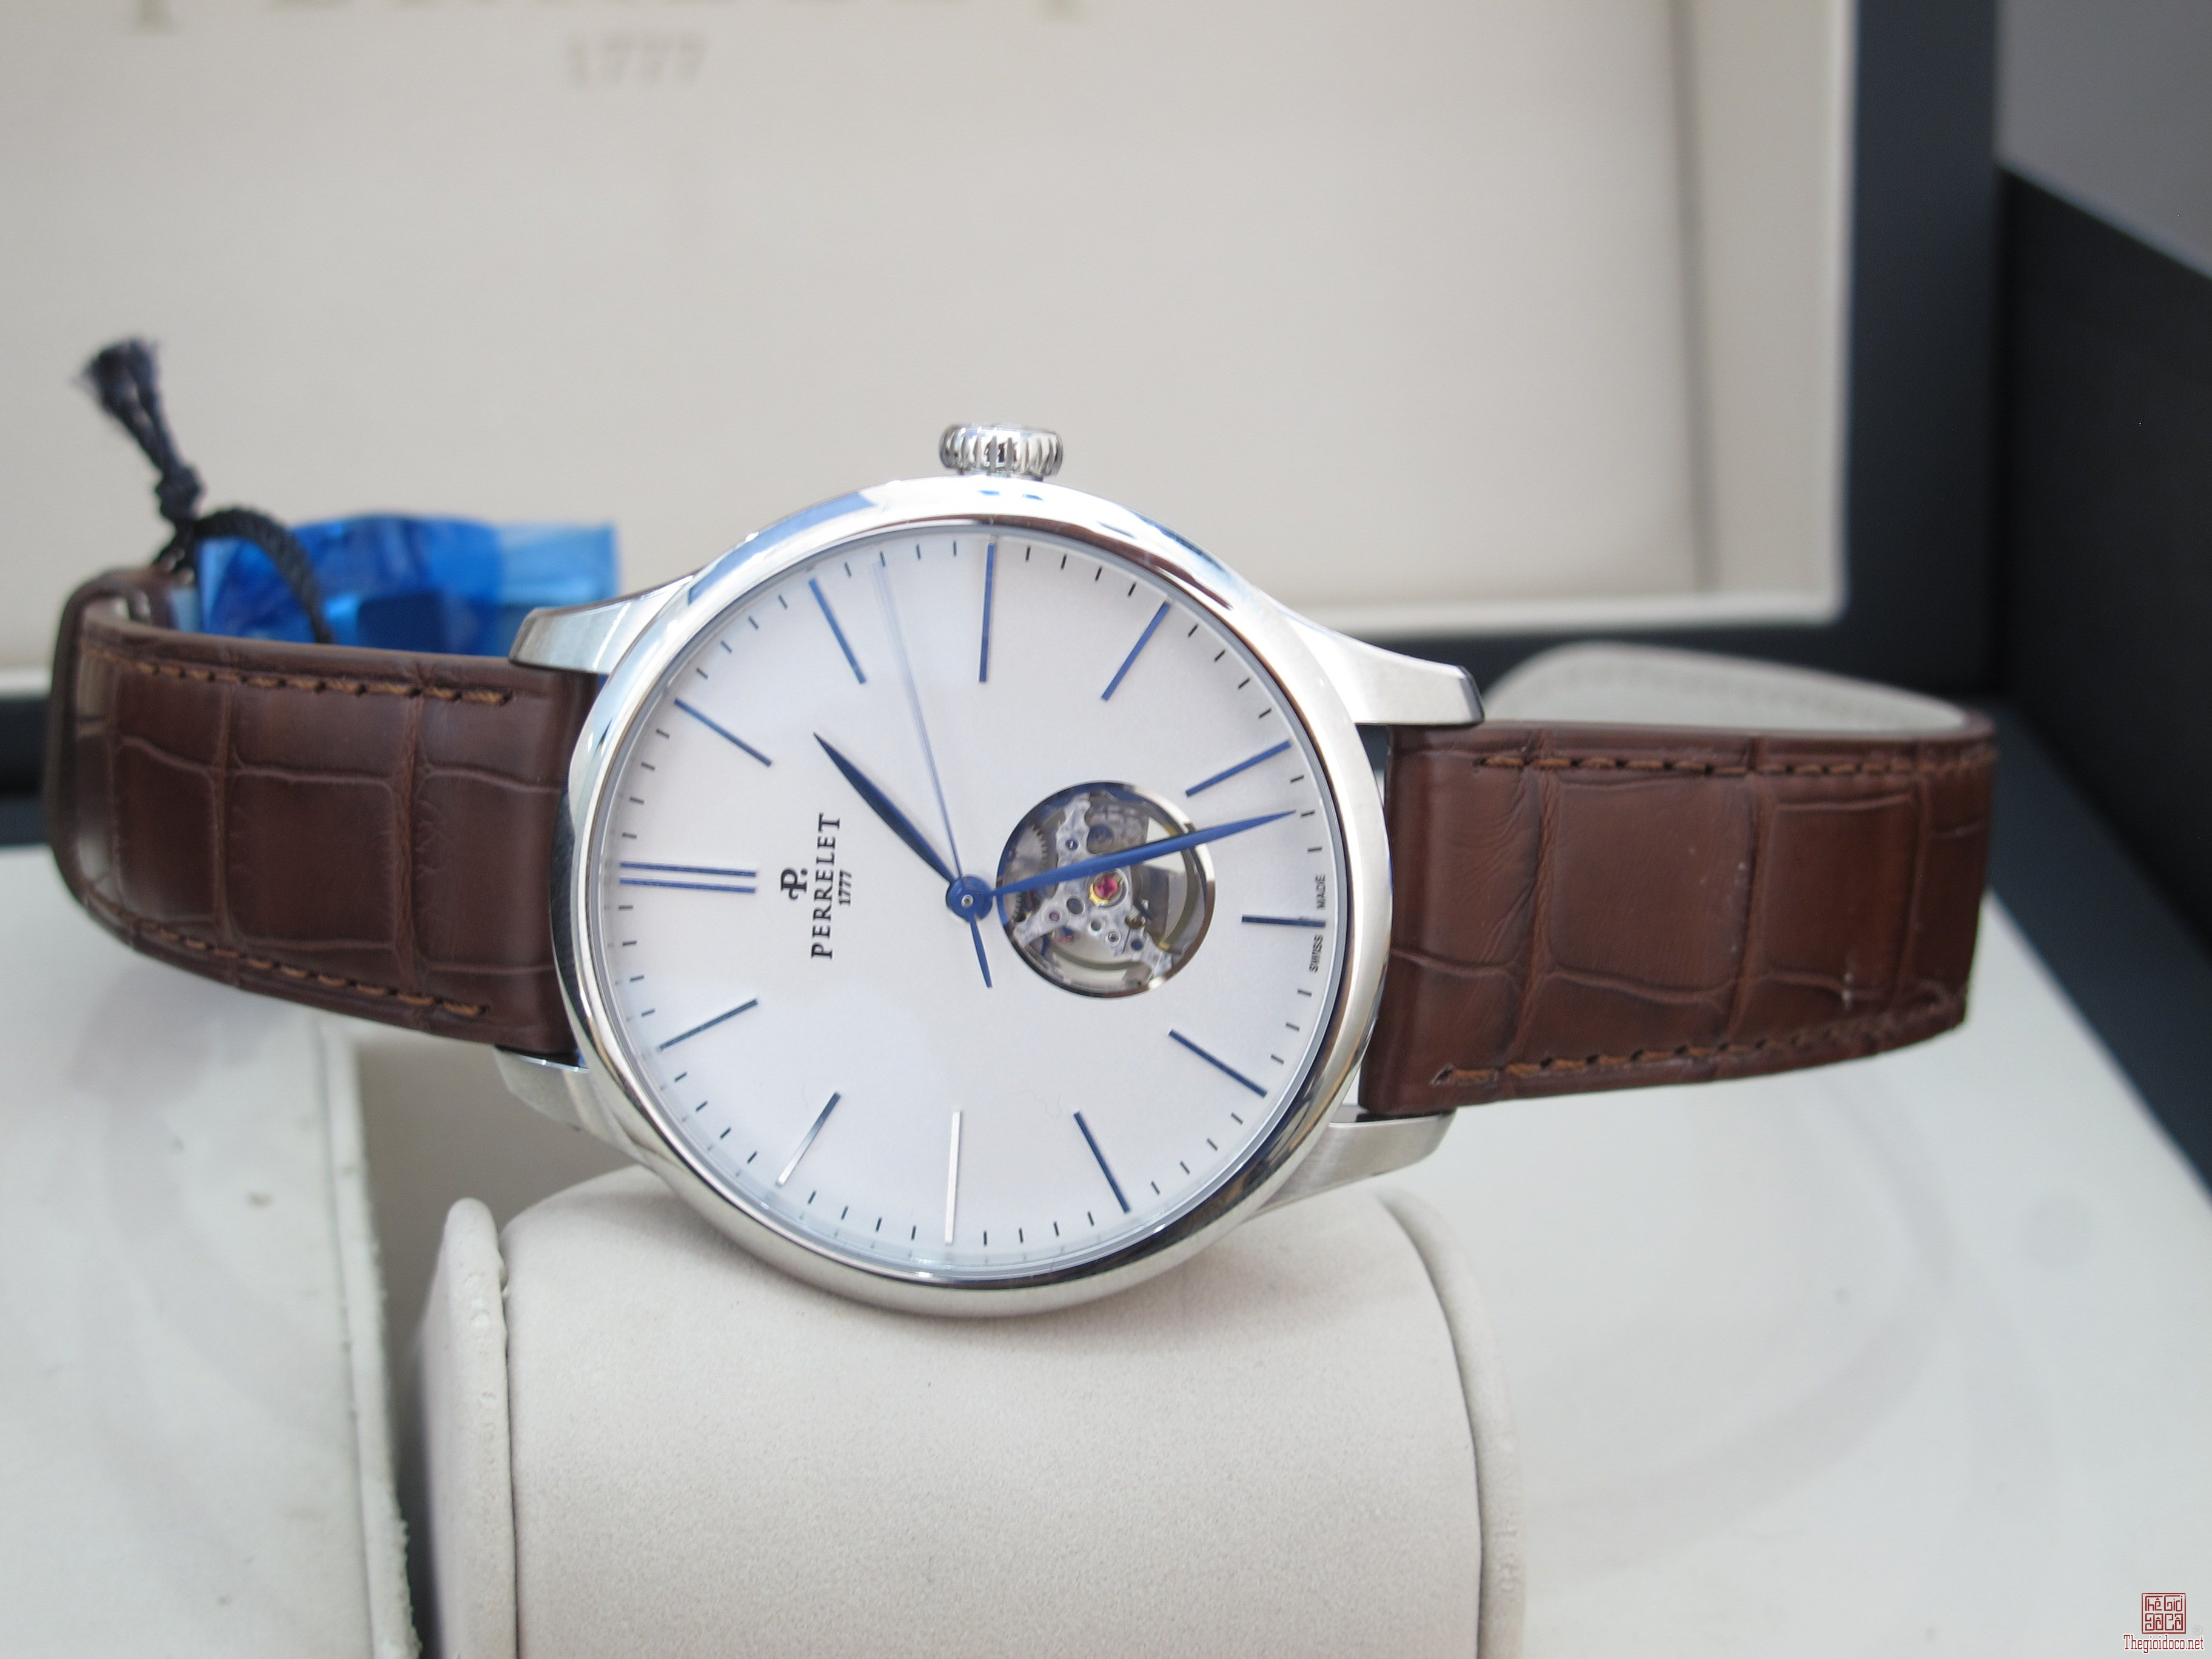 Đồng Hồ PERRELET A1087/4 Automatic fullbox Size 42.5 mm New 100%